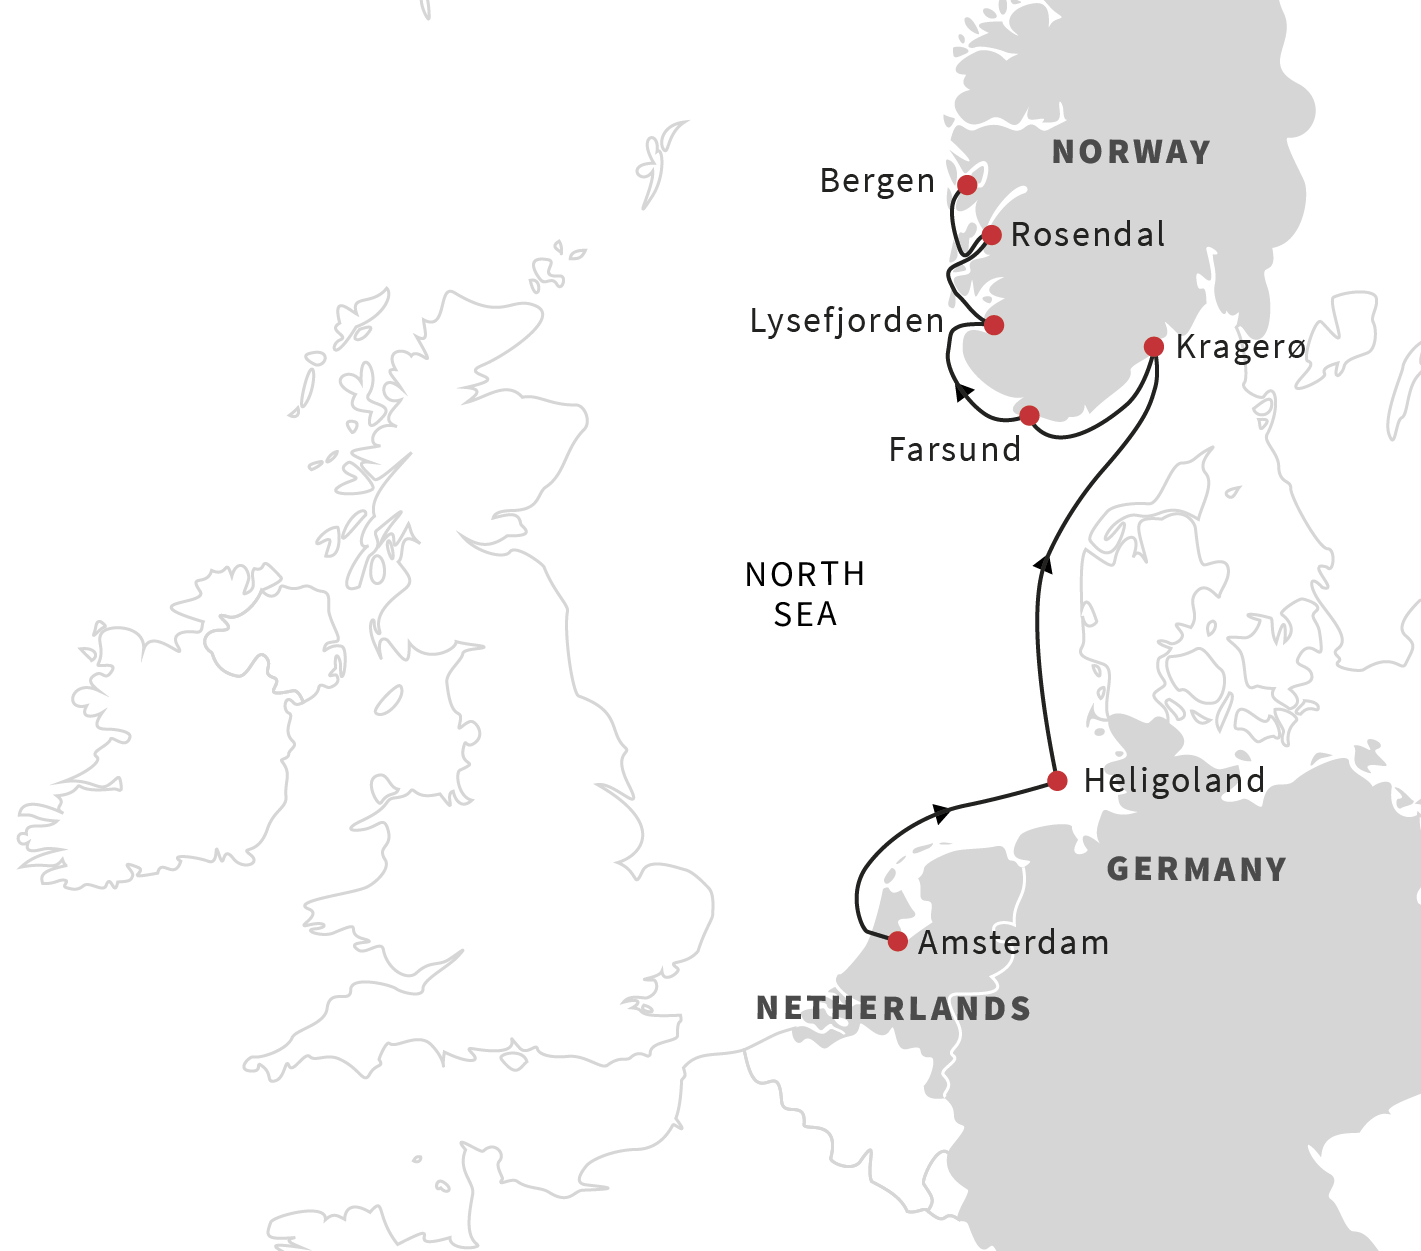 Map for Pearls of Southern Norway